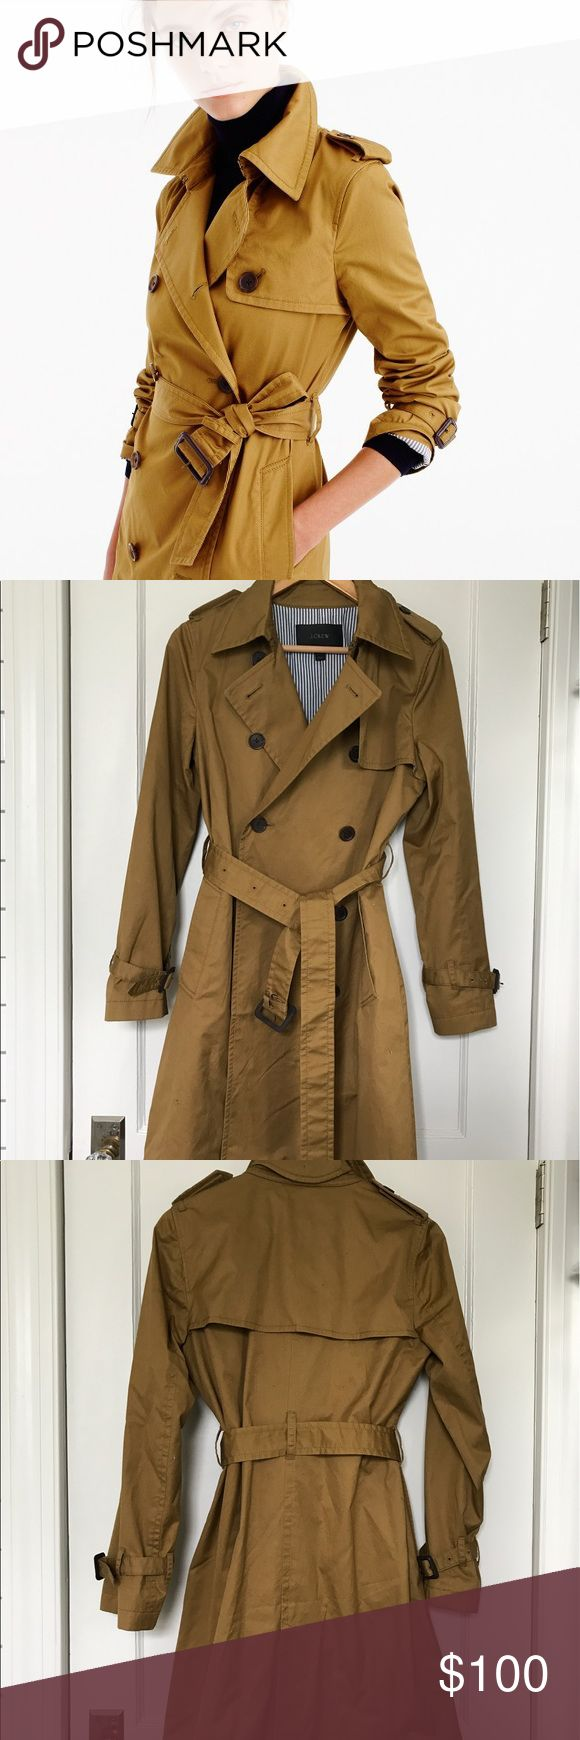 "J Crew Women's City Trench Coat (2016) Tailored for a fitted look. Body length: 39 1/2"". Sleeve length: 32 1/2"". Hits above knee. Retailed originally for $158; no longer sold by J. Crew. This item is a size 4 and fits true to size. This coat has never been worn, but does not have the tags. J. Crew Jackets & Coats Trench Coats"